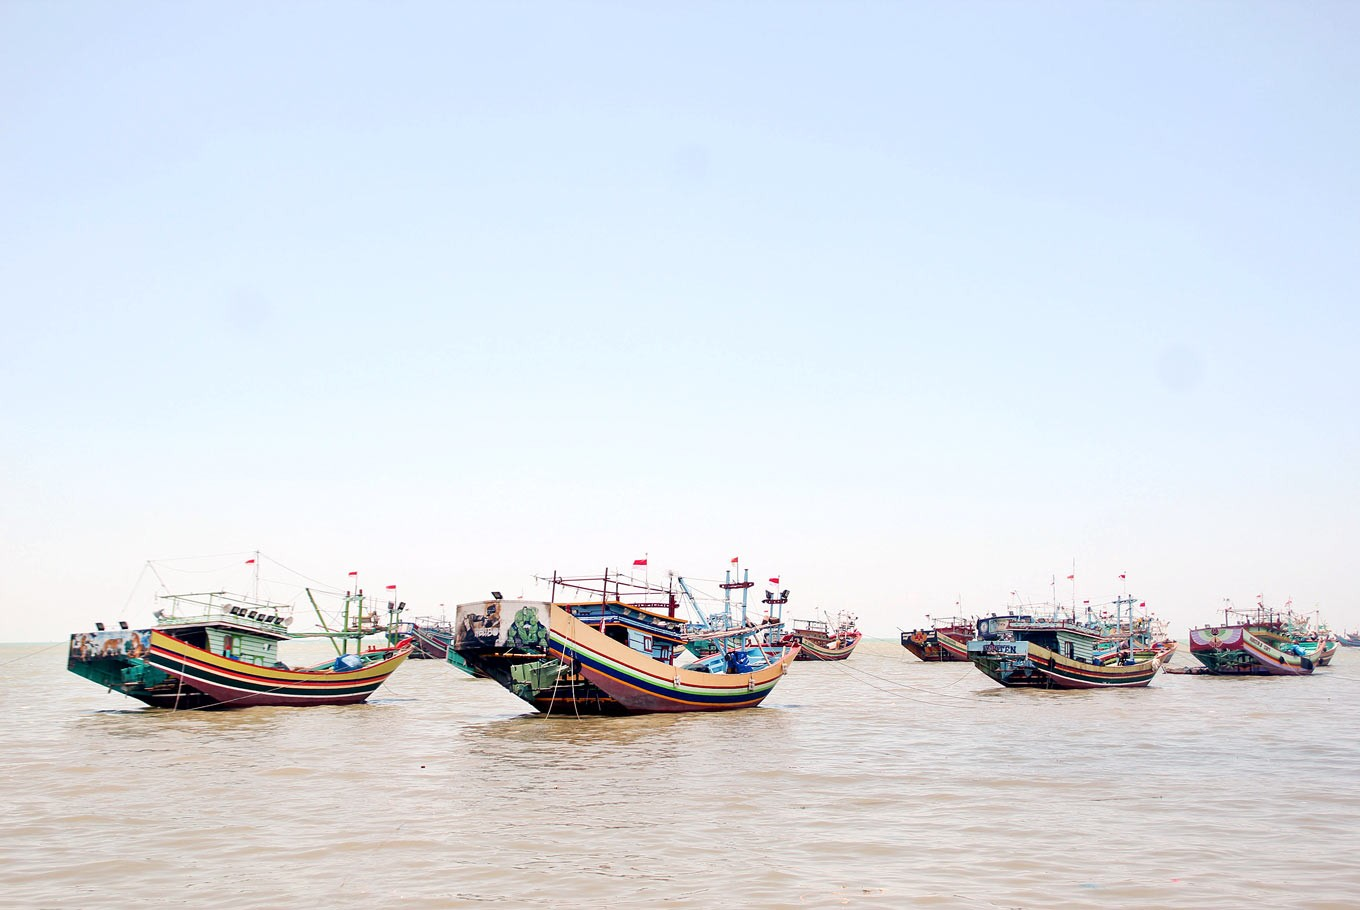 Business as usual: Wooden vessels anchor in the waters off Juwana in Pati, Central Java.